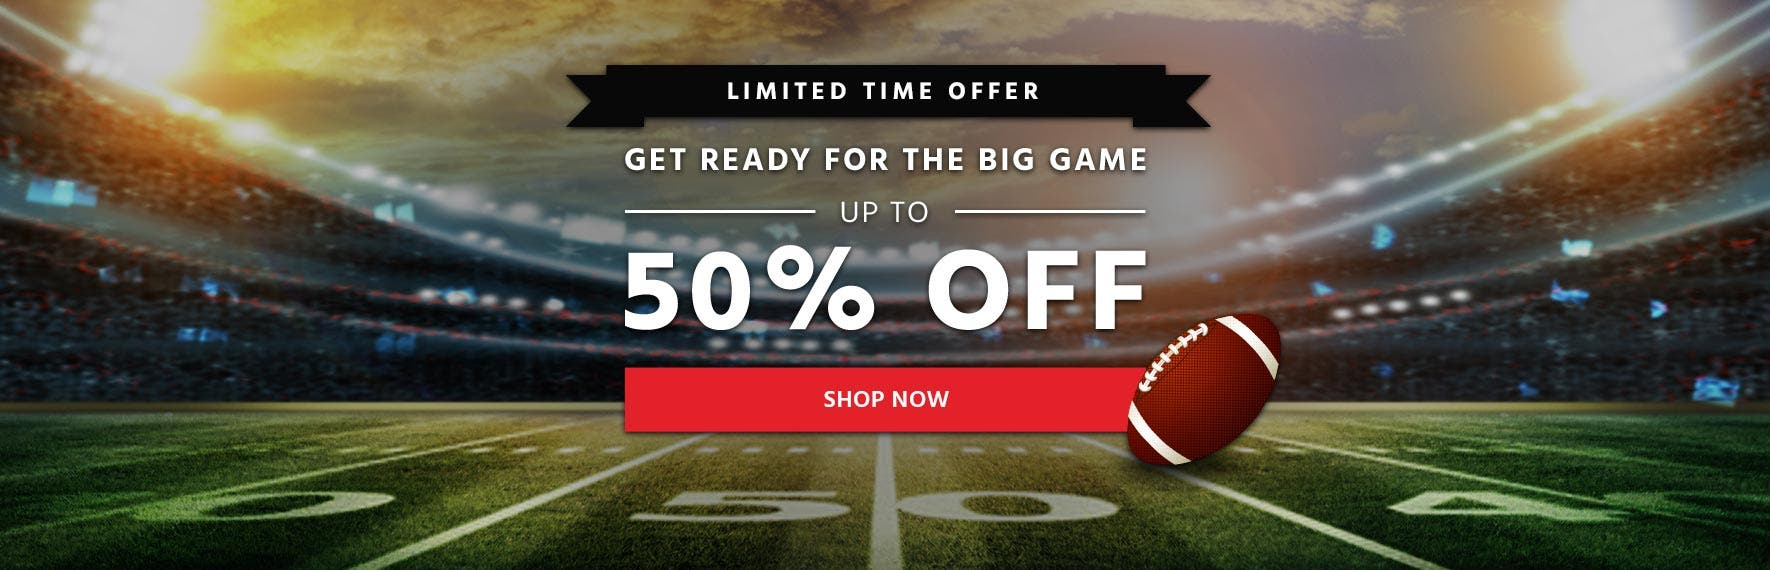 Get Ready For The Big Game Up To 50% Off Limited Time Offer Shop Now